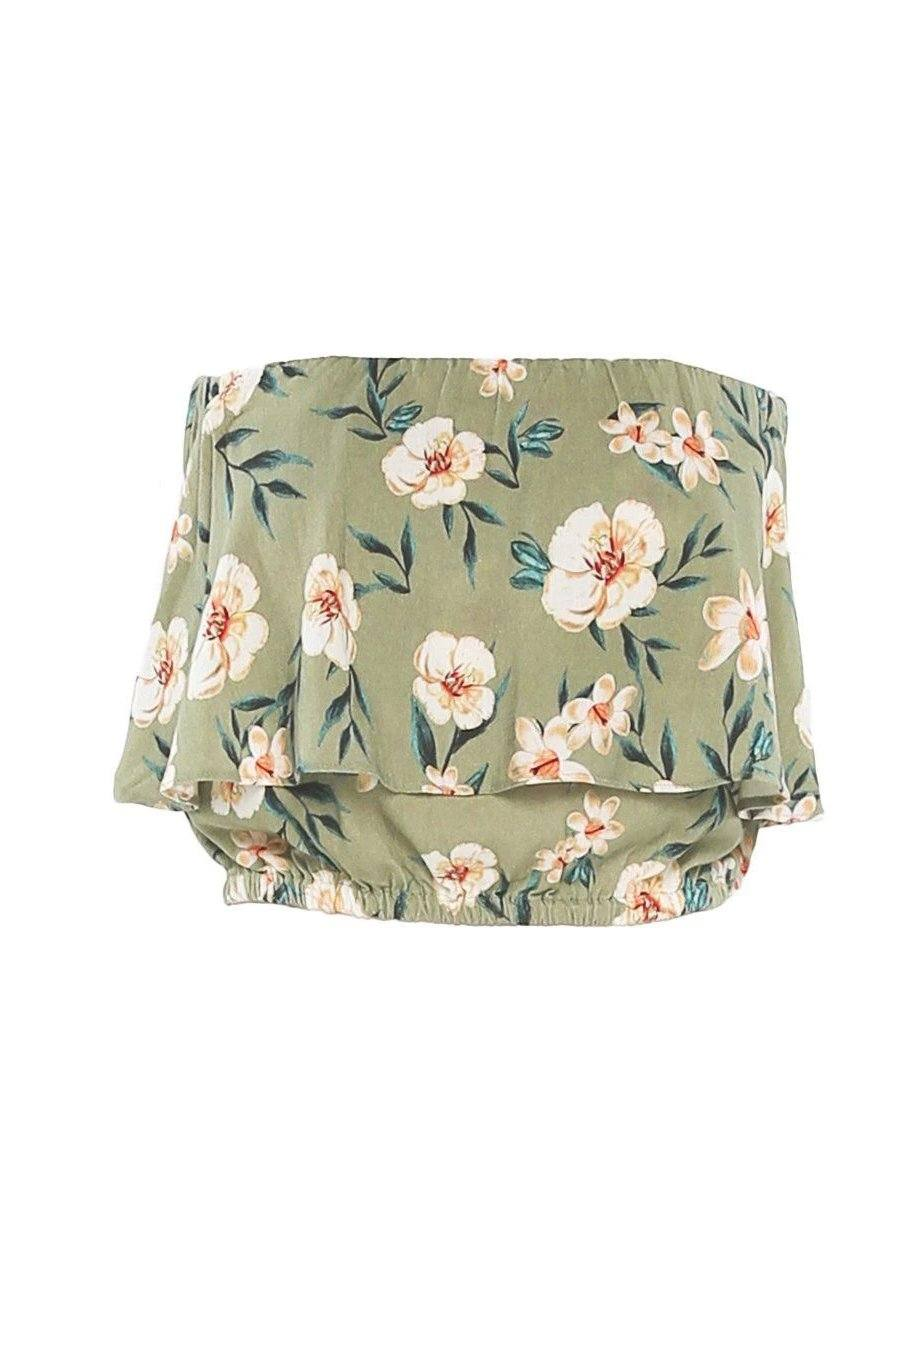 Huntington Layered Top - Green Floral